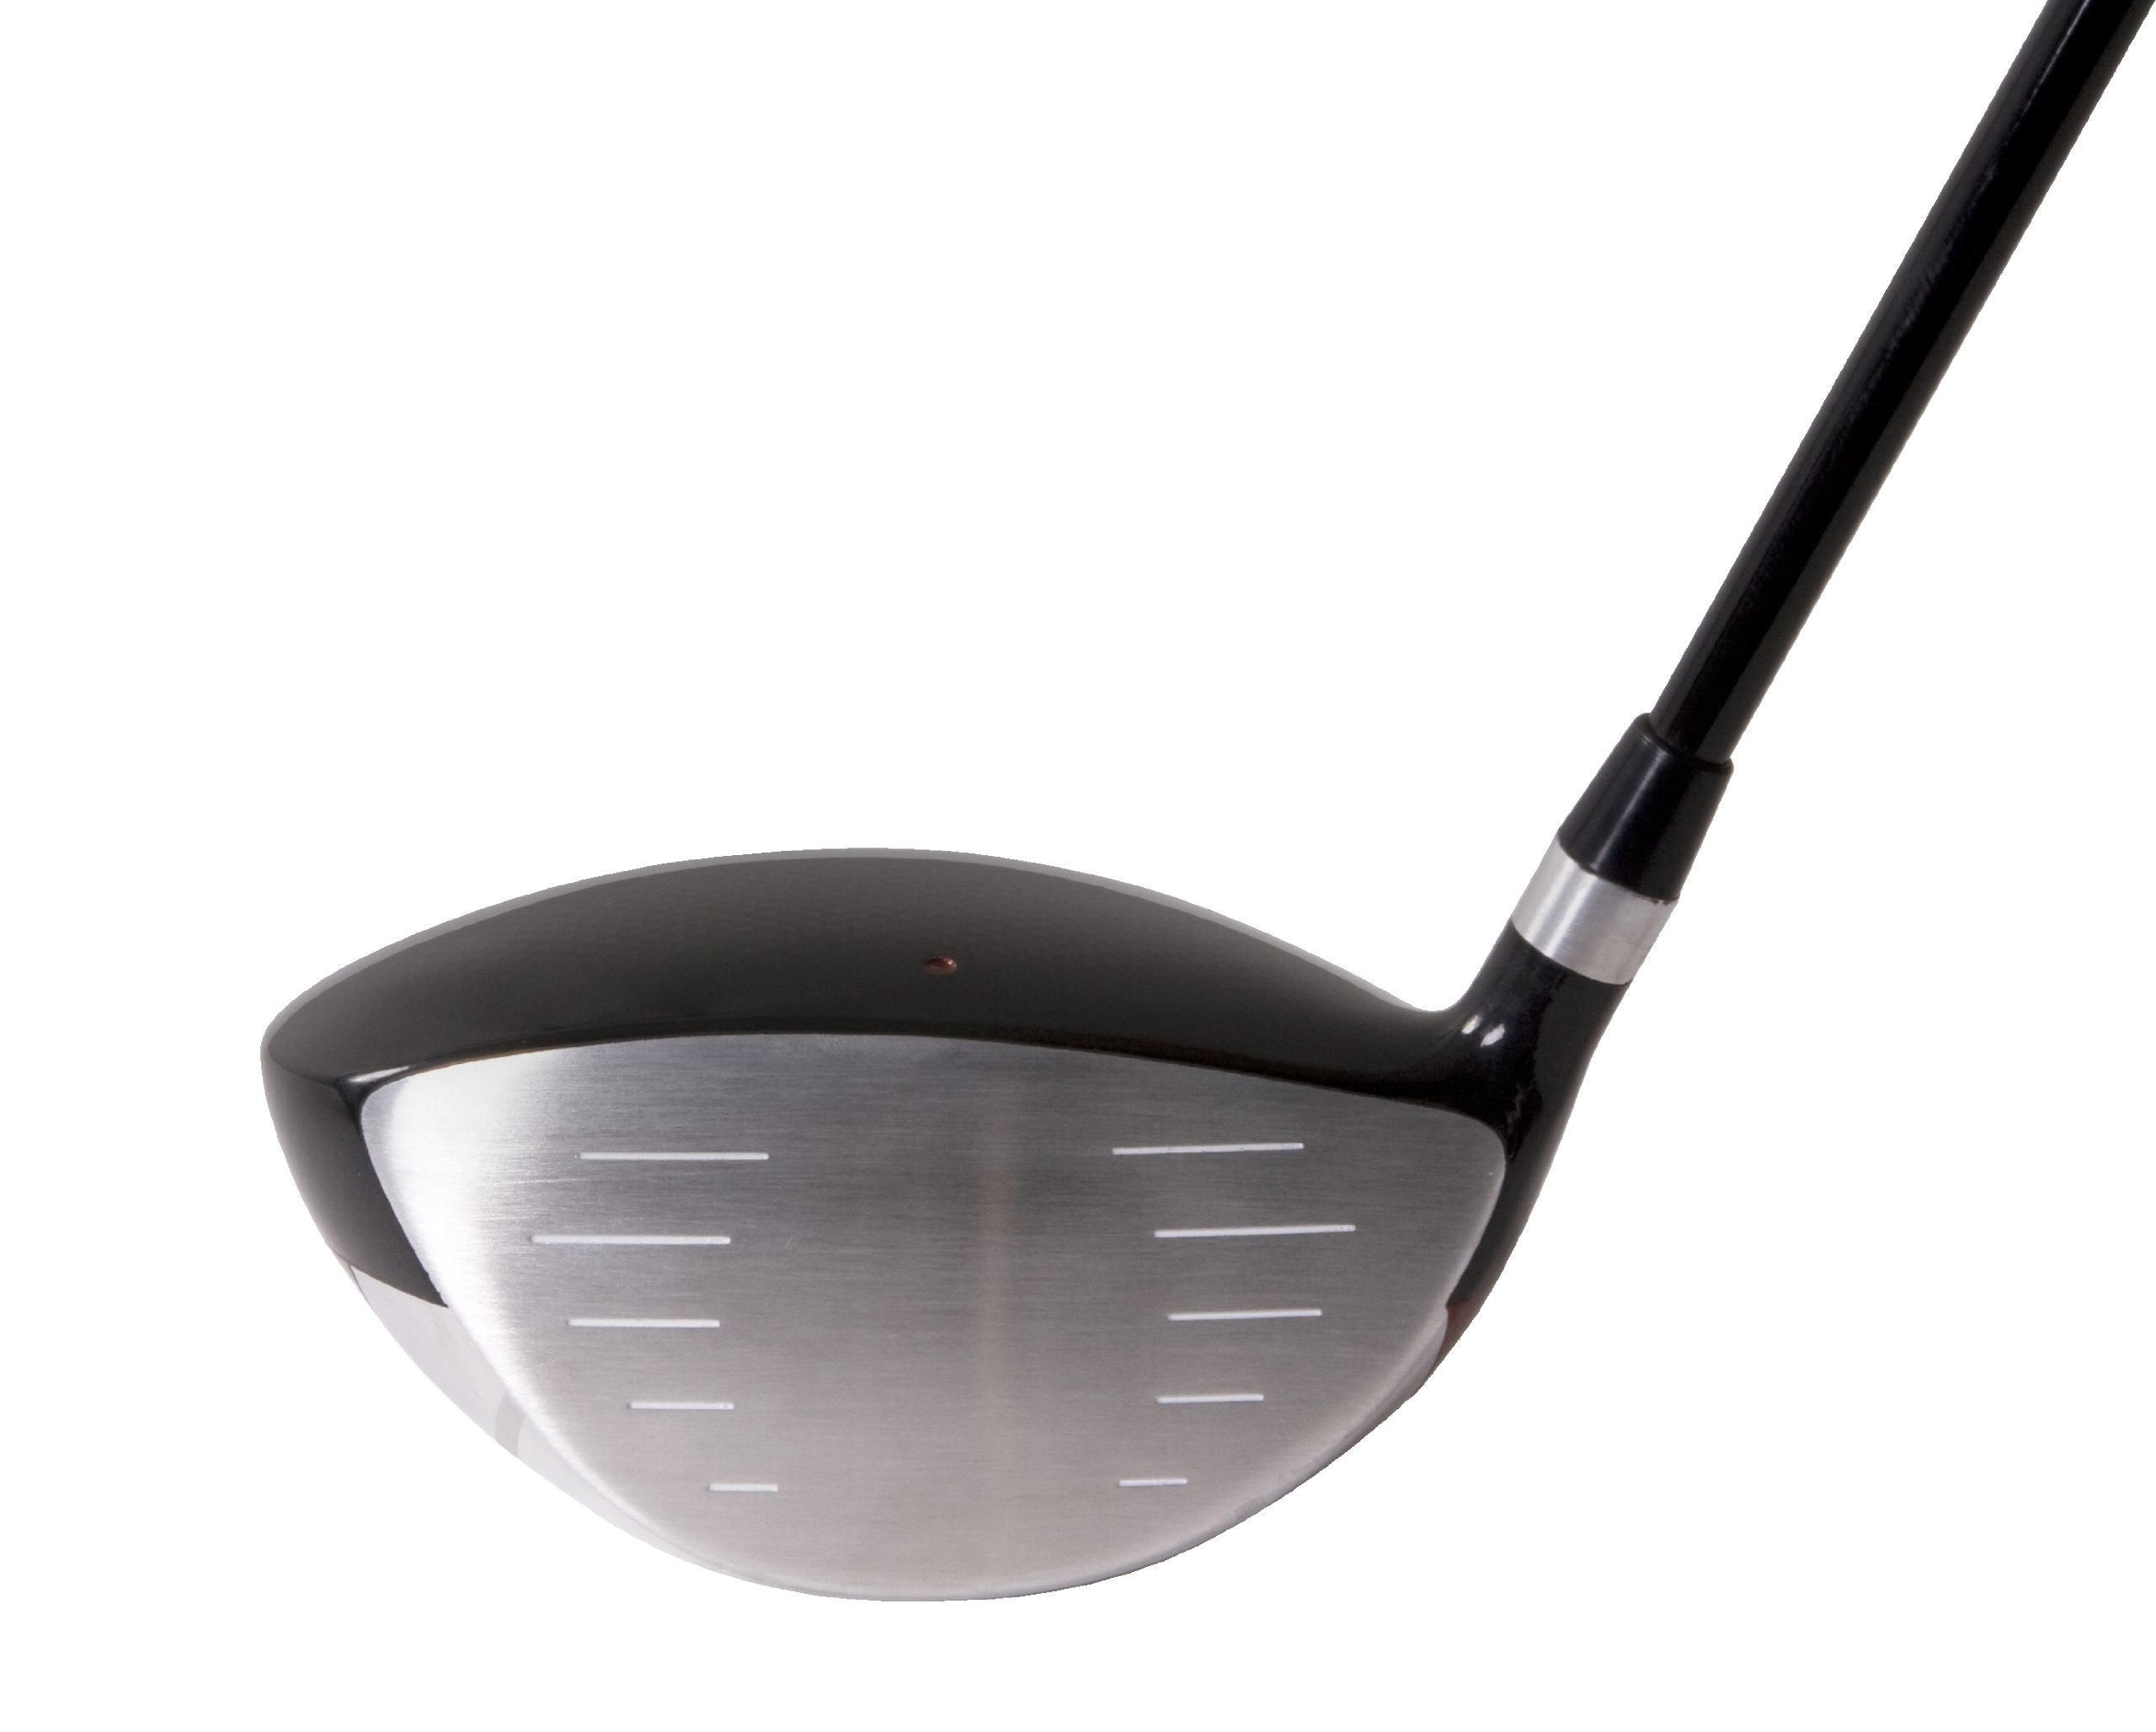 Pinemeadow SPR Driver (Right-Handed, Graphite, Regular, 10.5-Degrees) by Pinemeadow Golf (Image #2)